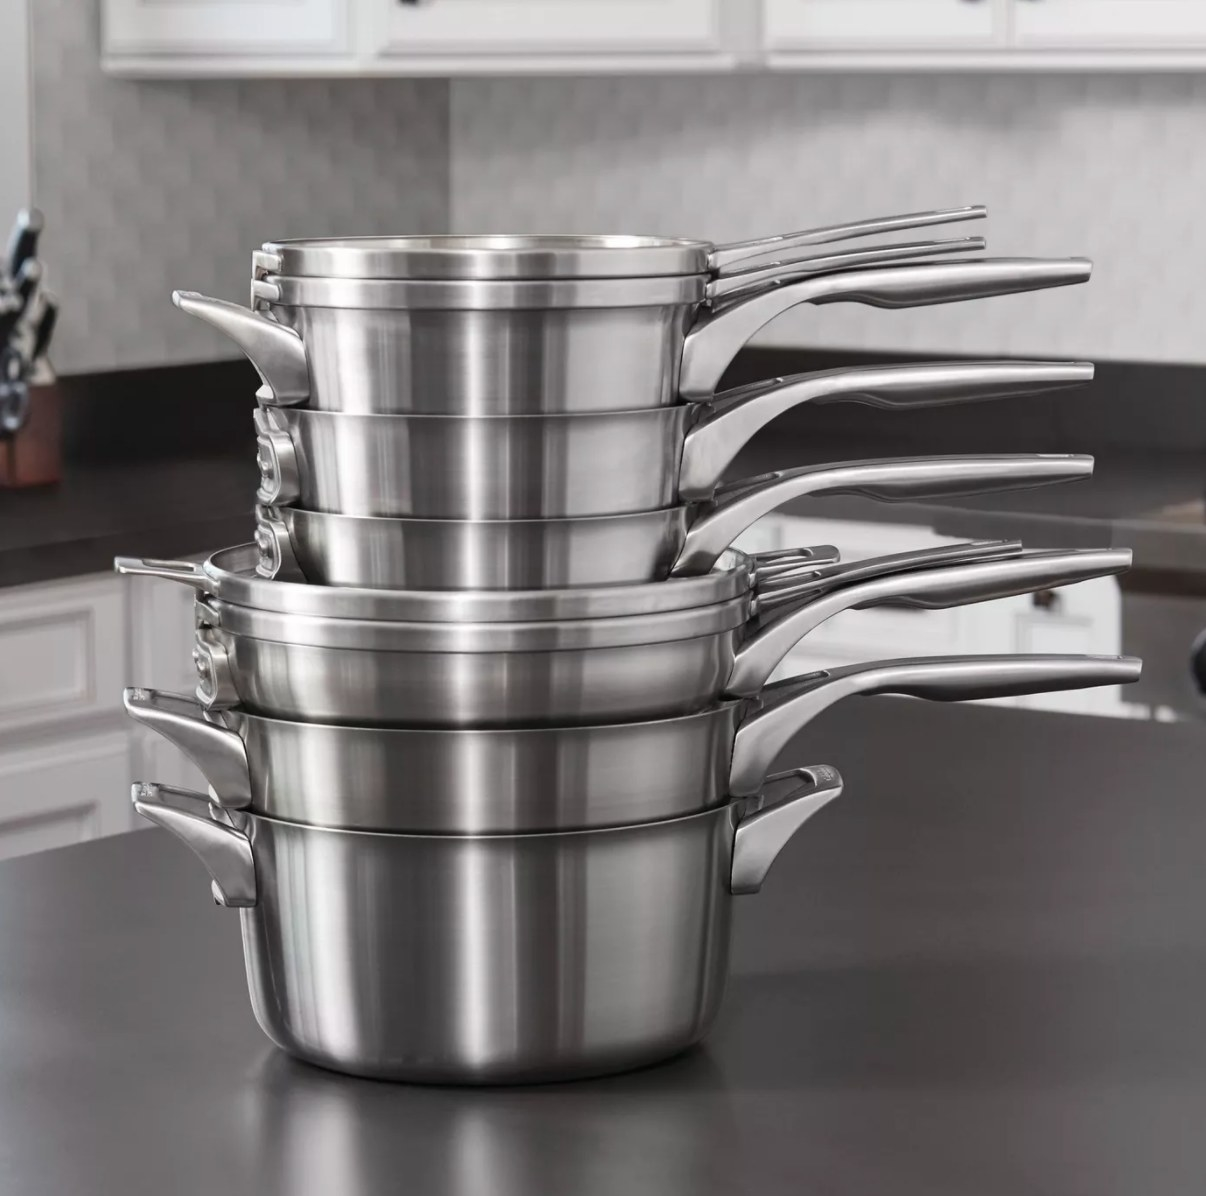 Calphalon stainless steel stack of pans